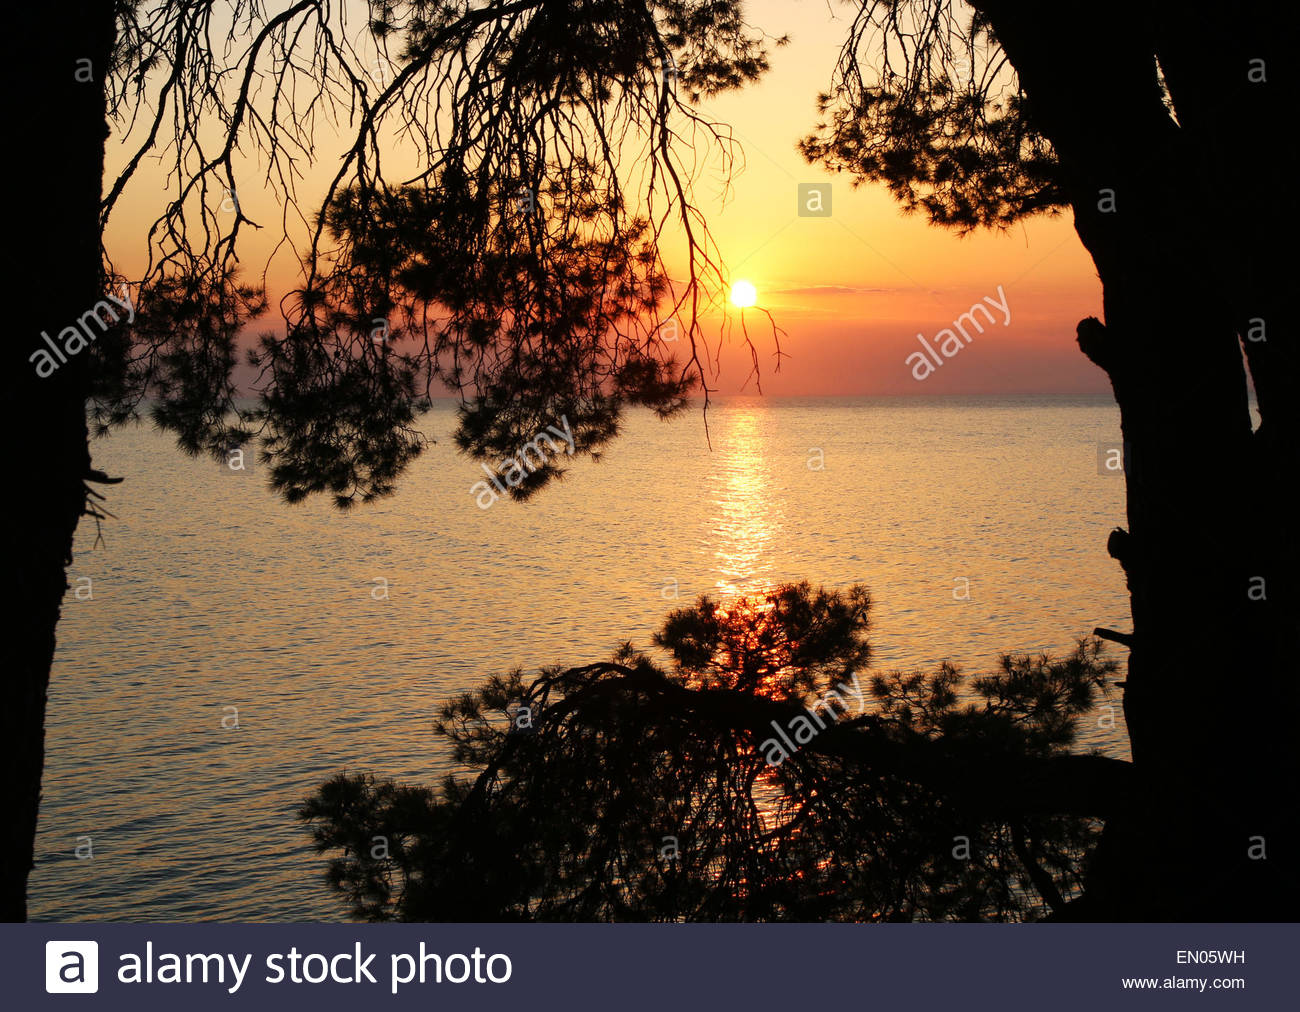 Elia Beech, Halkidiki, Greece, 24th April 2015 The beautiful evening sunsets in the scenic coastline of the Sithonia - Stock Image